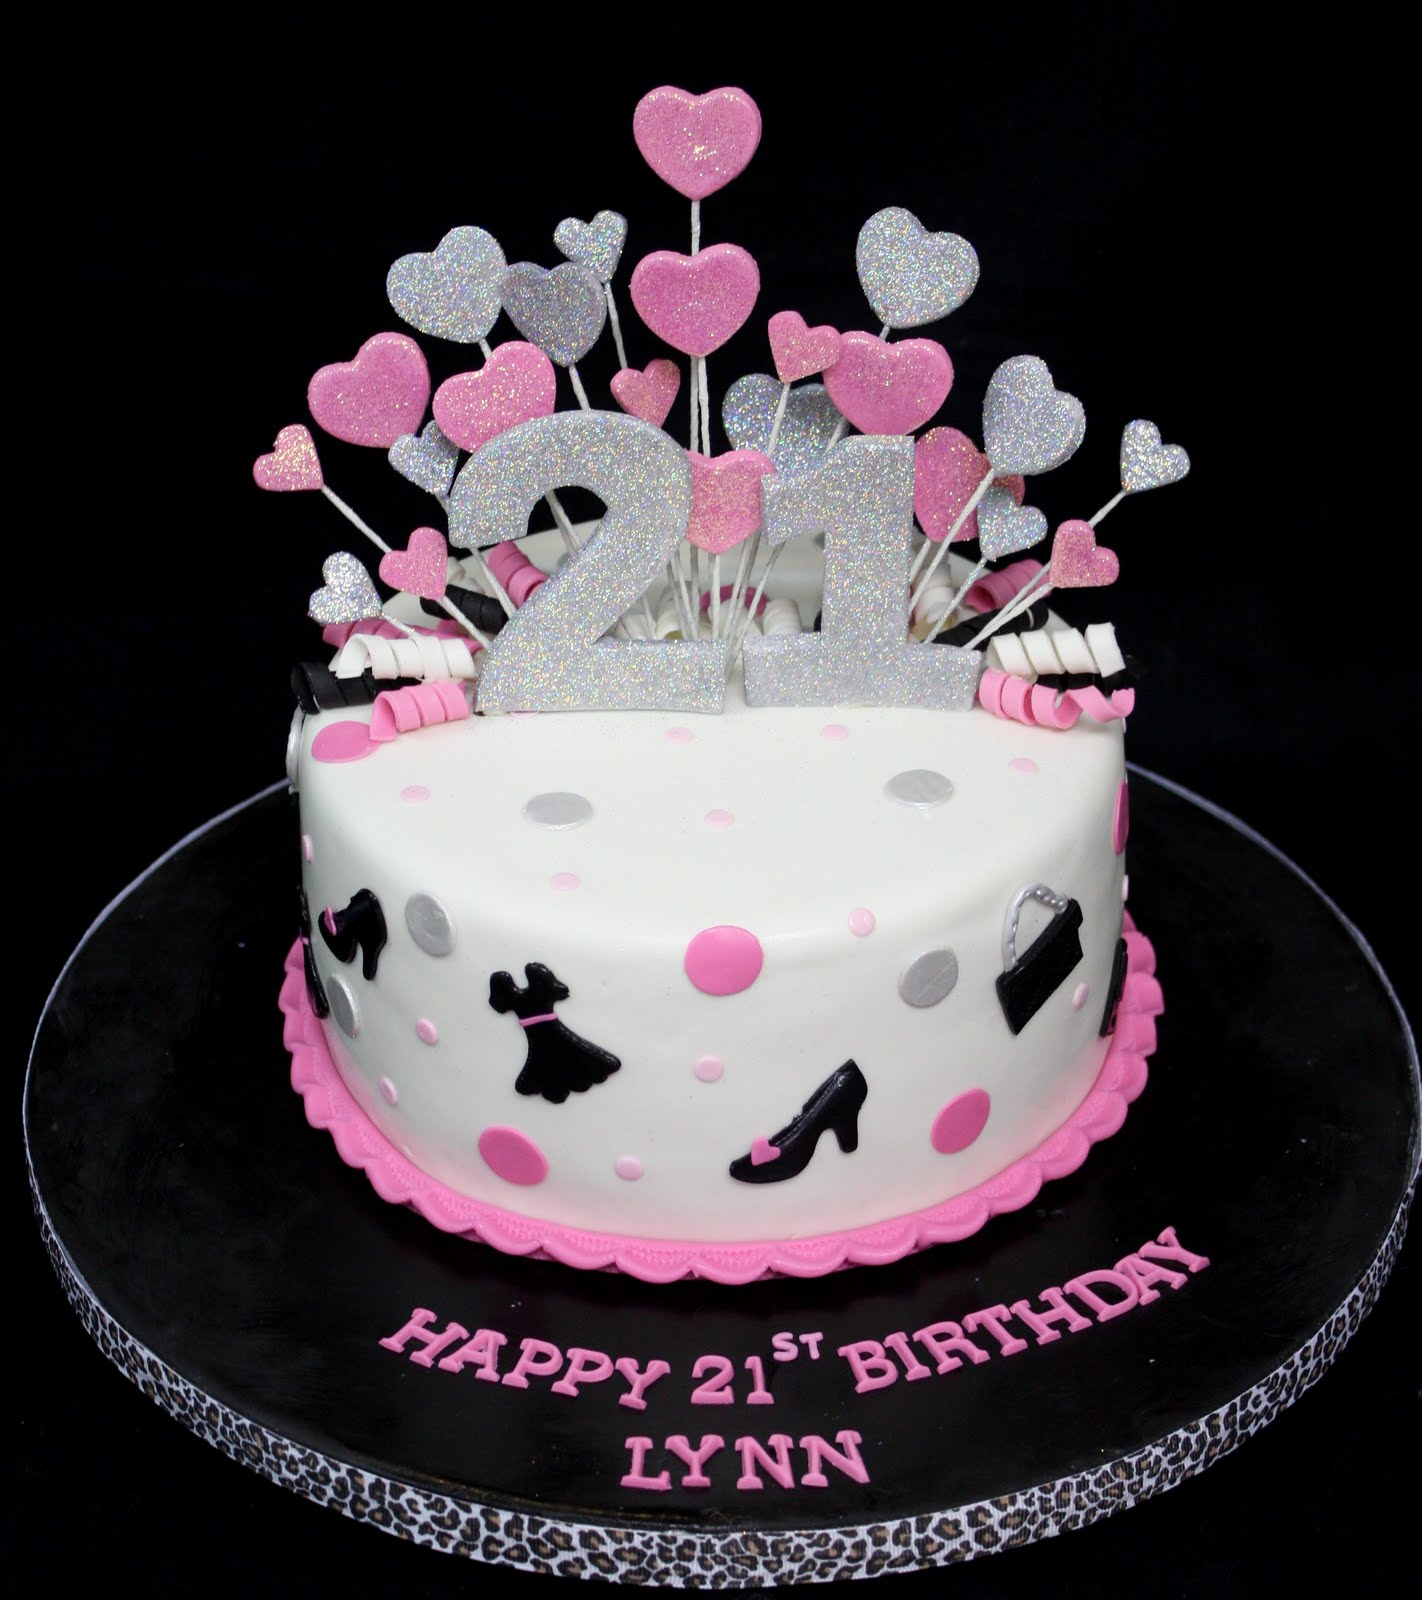 Birthday Cake Design Photos : 21st Birthday Cakes   Decoration Ideas Little Birthday Cakes